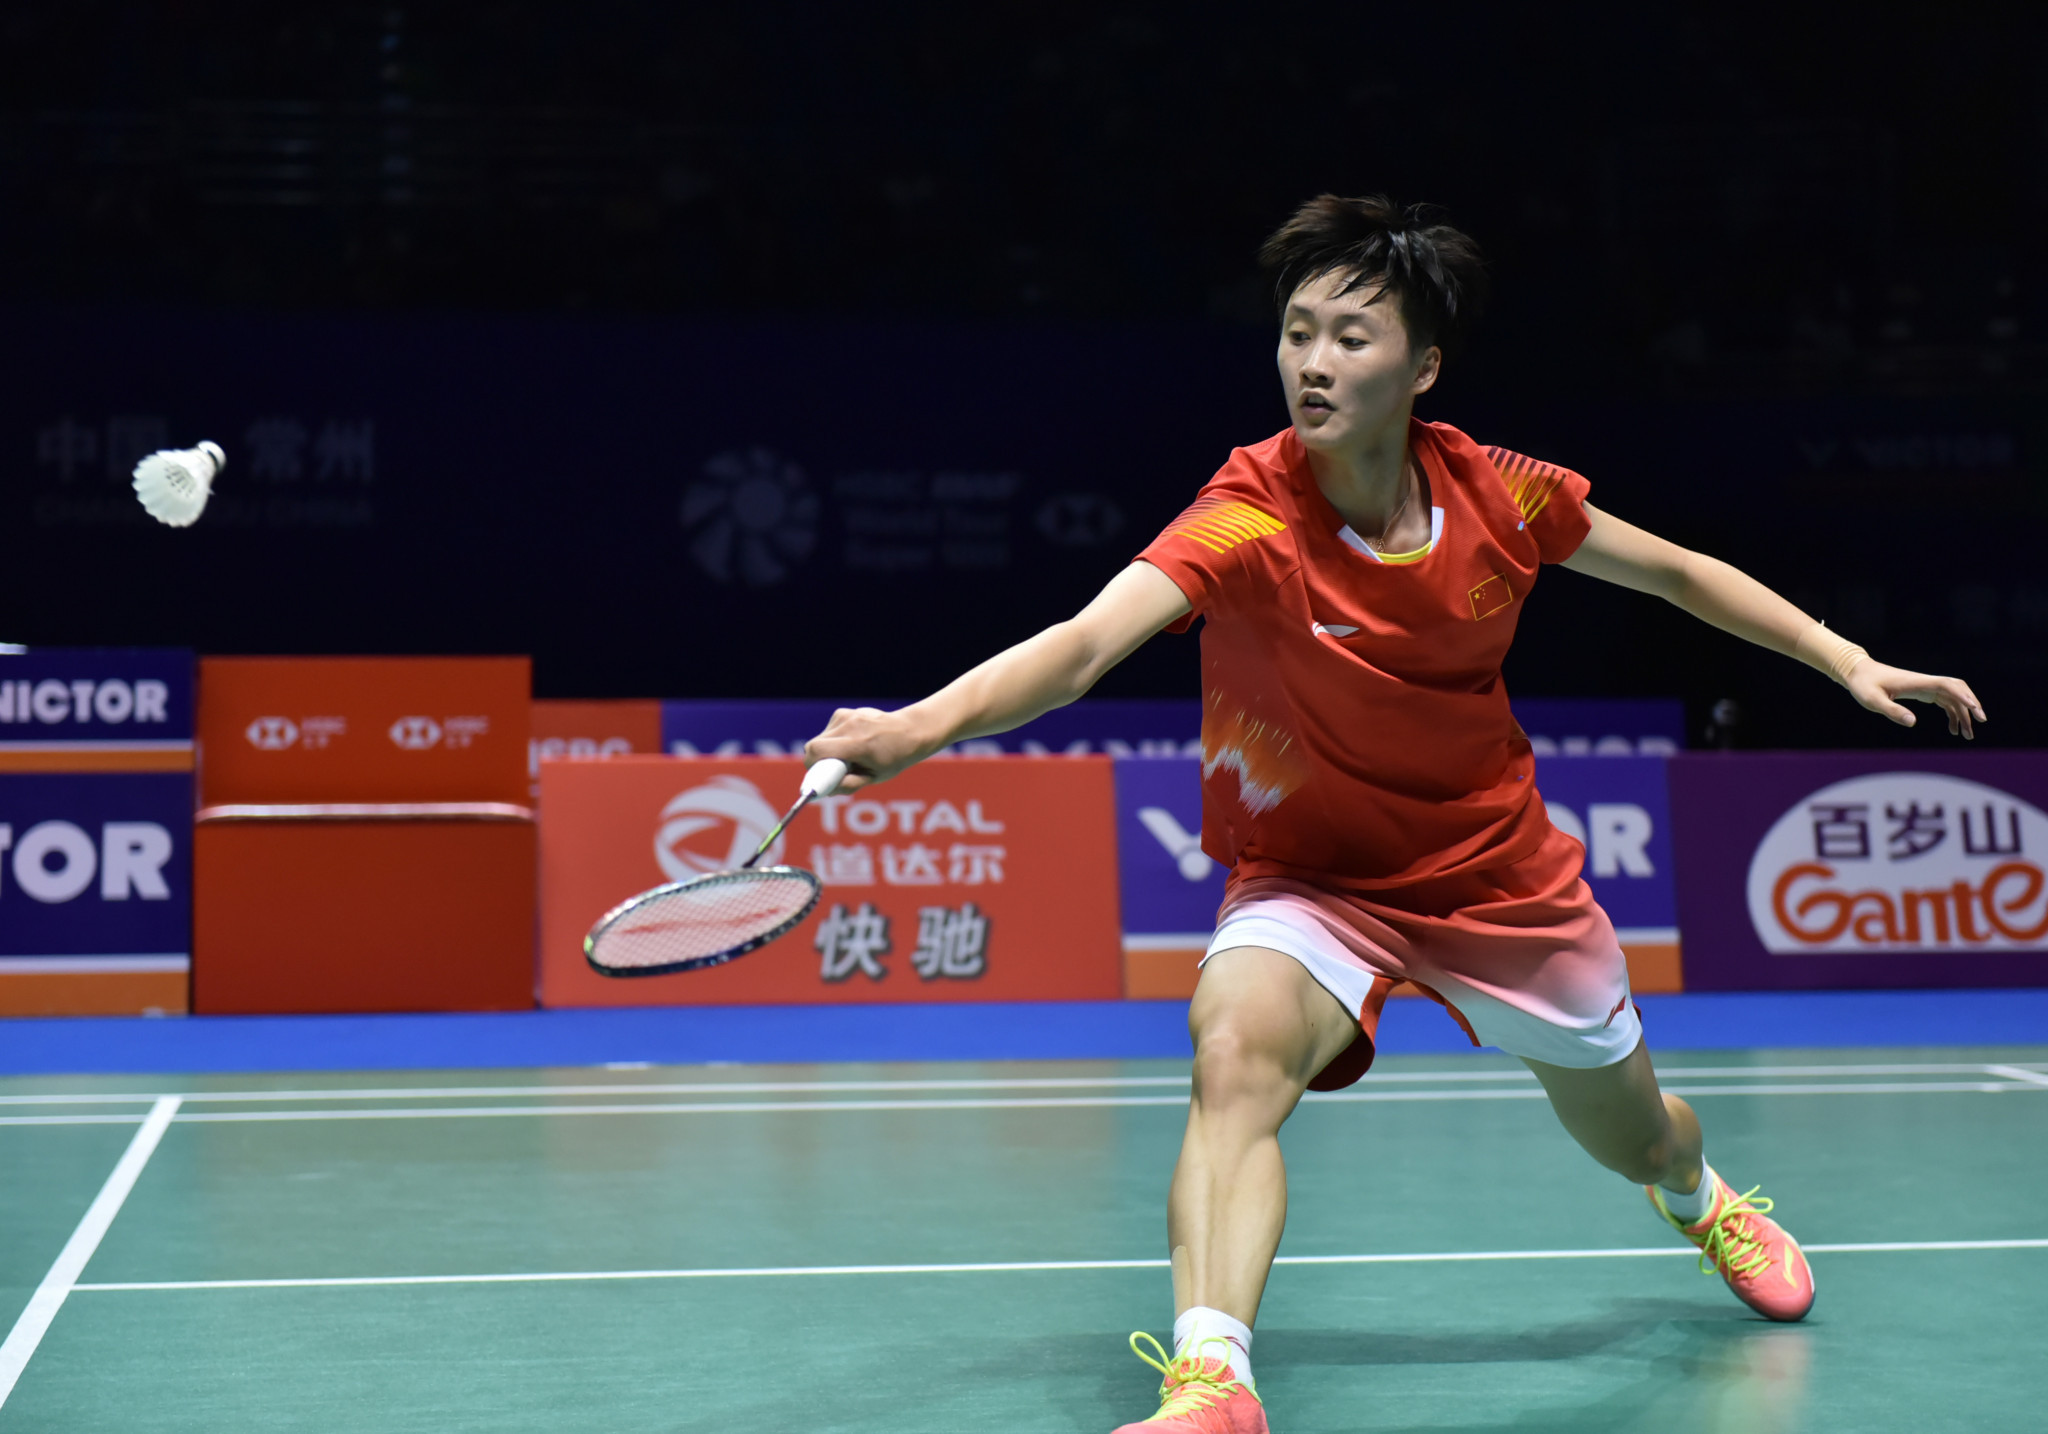 China's Chen Yufei beat defending champion Akane Yamaguchi of Japan to secure her place in the women's singles final ©Getty Images